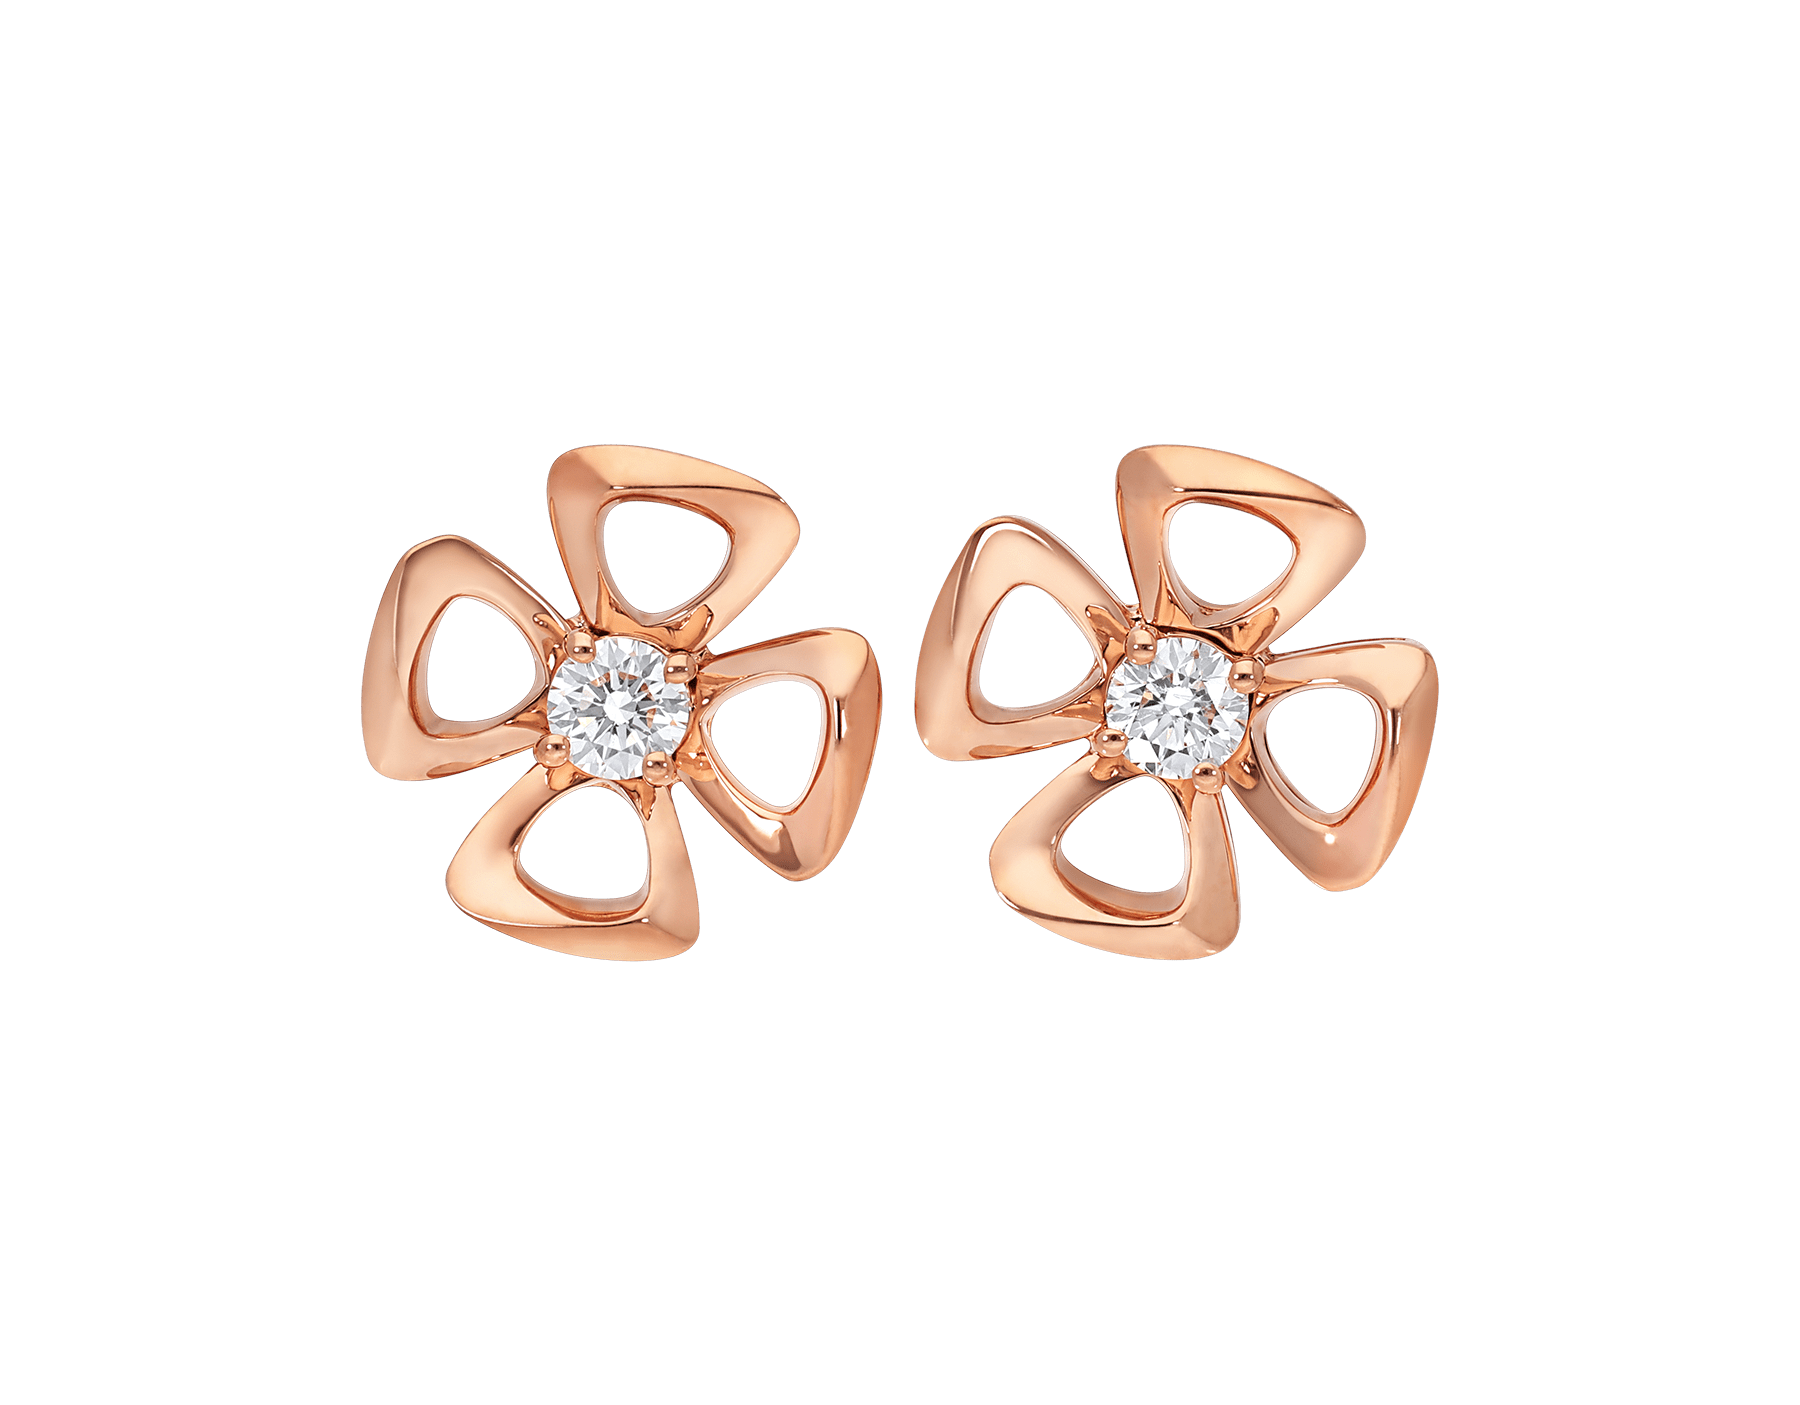 Fiorever 18 kt rose gold earrings set with two central diamonds (0.10 ct each) 355327 image 1